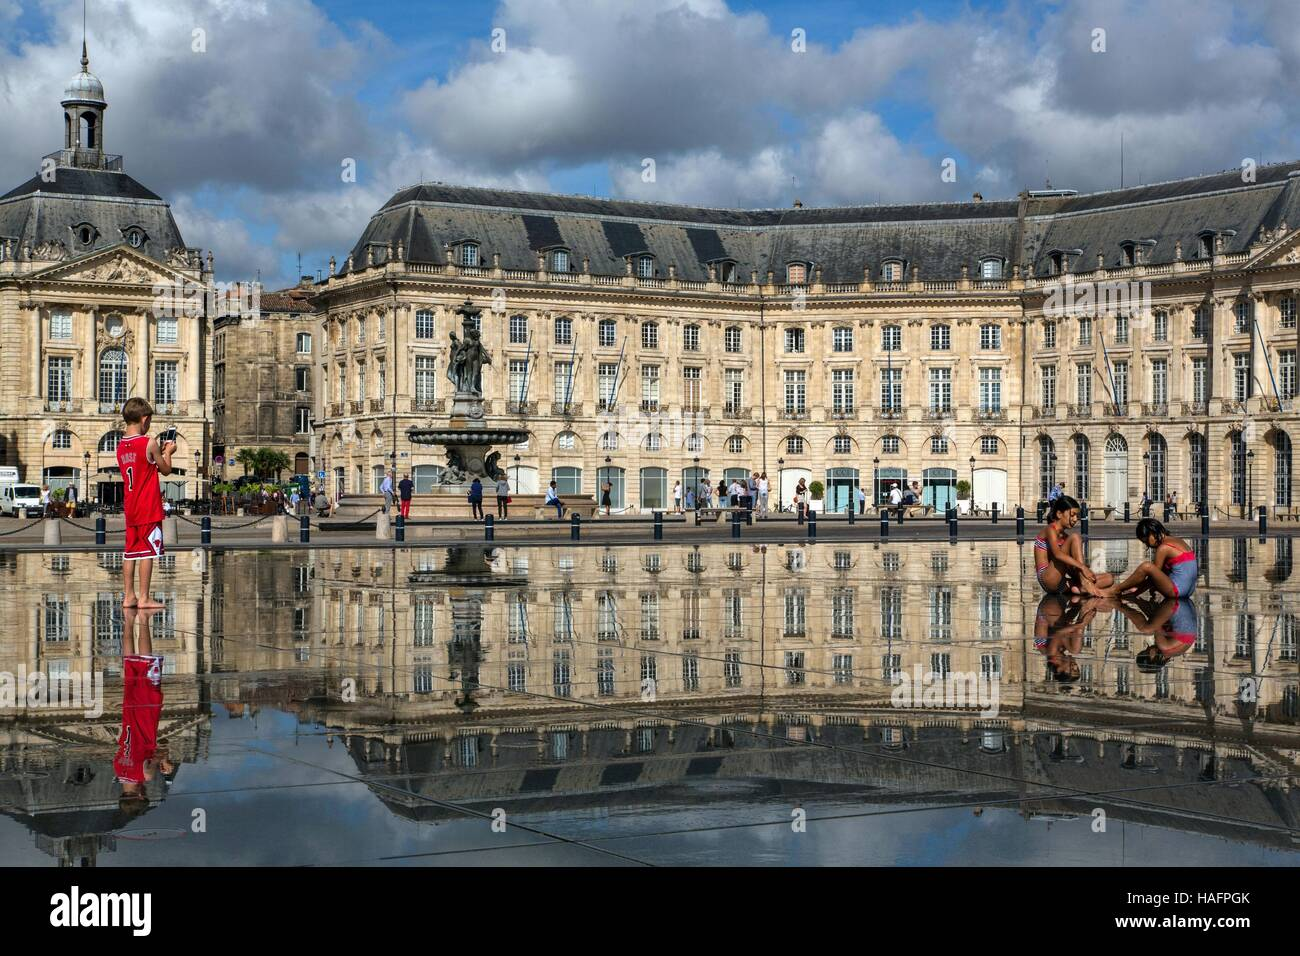 ILLUSTRATION OF THE CITY OF BORDEAUX, (33) GIRONDE, AQUITAINE, FRANCE - Stock Image